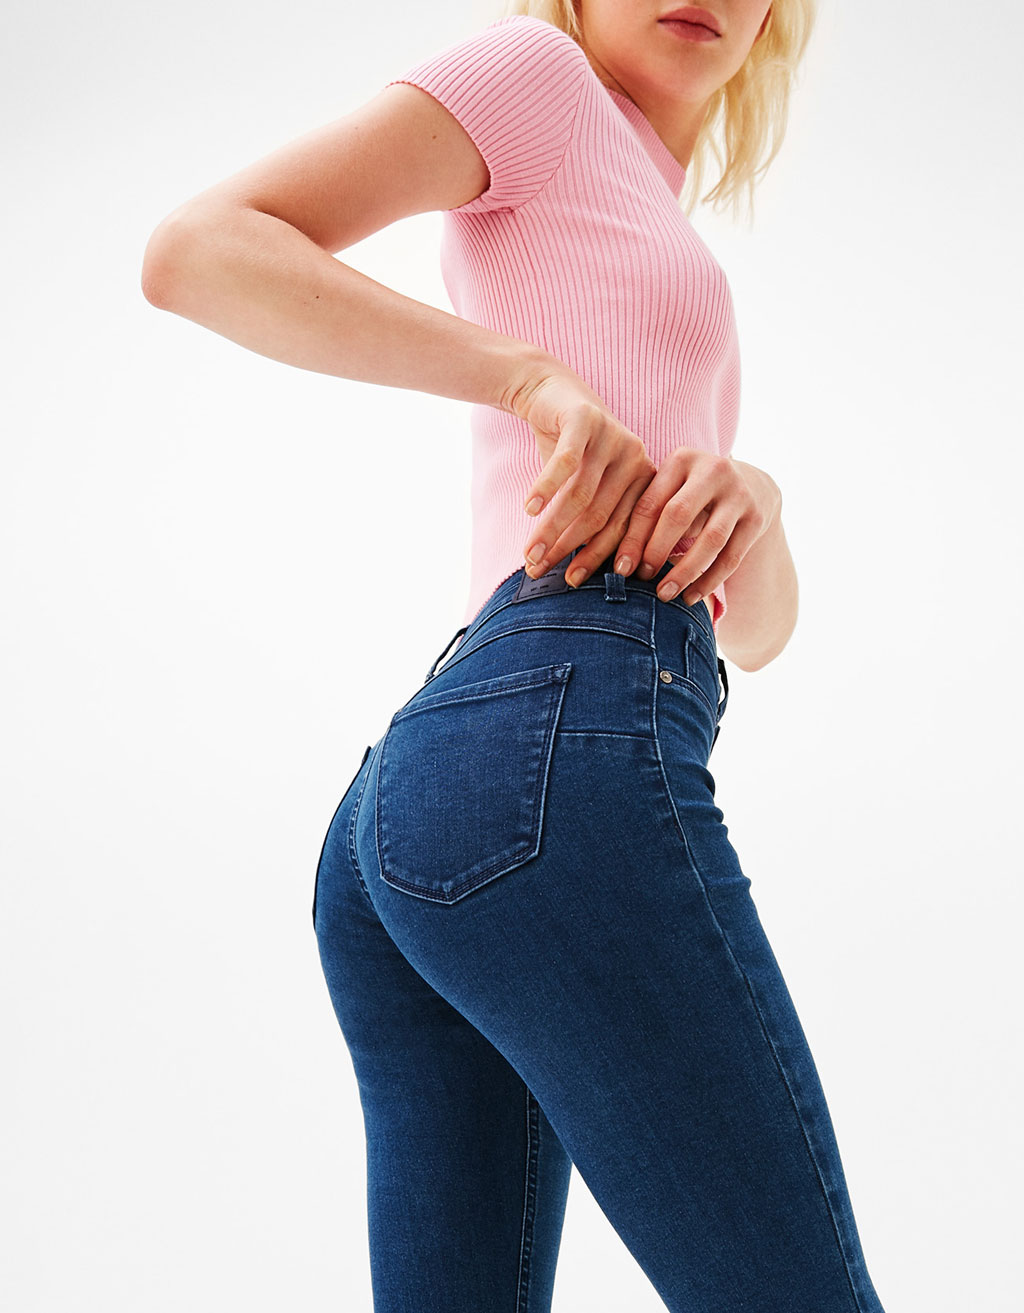 Stretchy push-up jeans